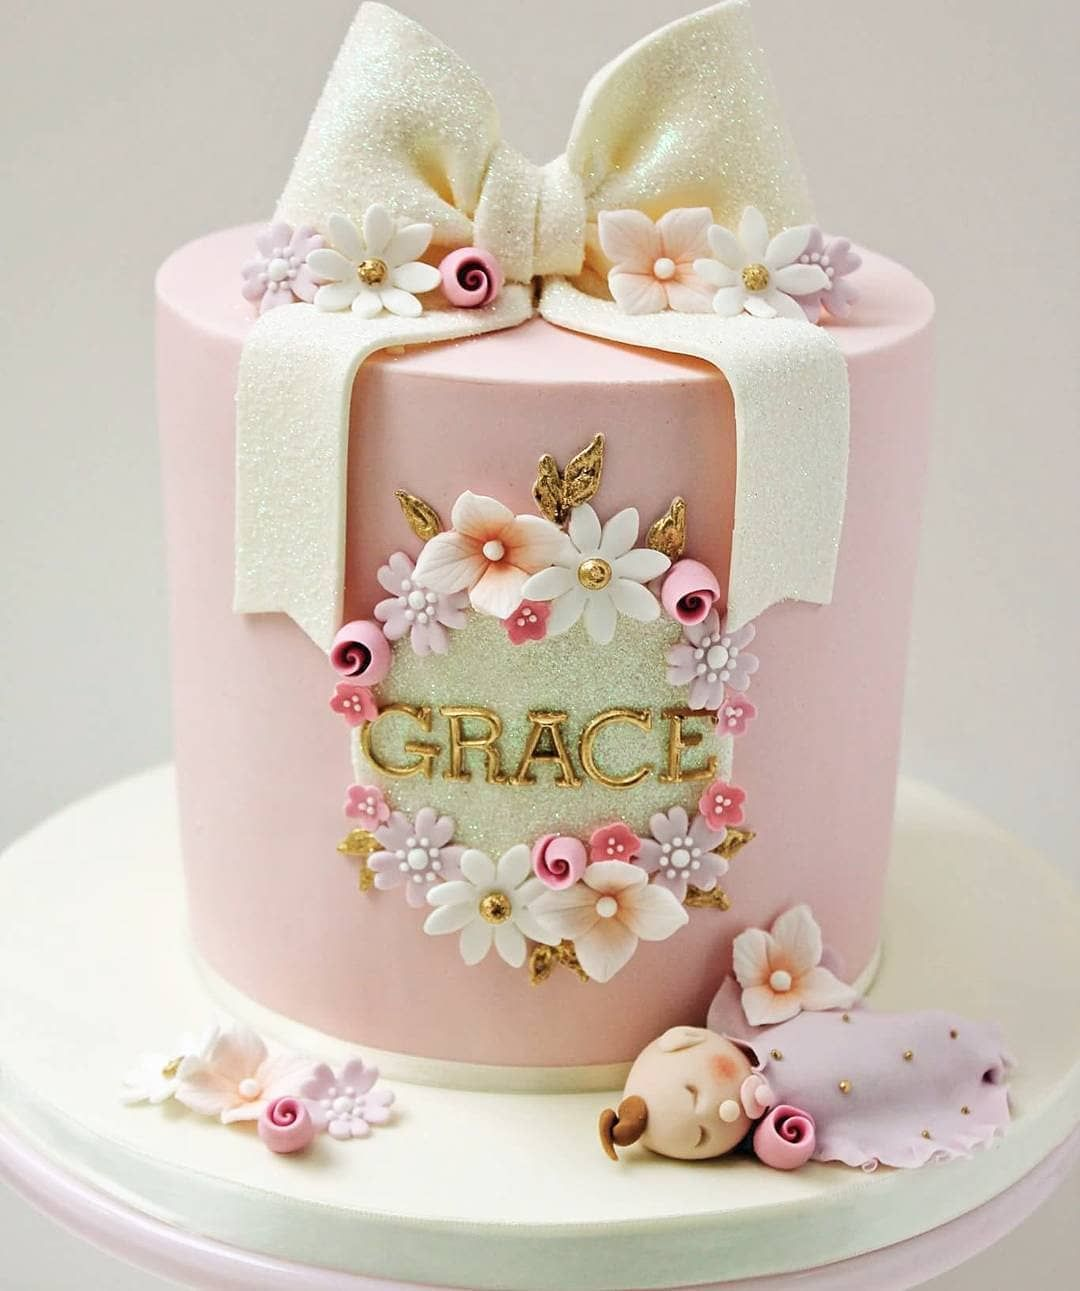 """Por @atelie_casa_da_torta on Instagram: """"#Repost @thecakecuppery • • • • • Christening cake for the cutest baby Grace 💖🌸🎀 I had the pleasure of making Grace's older sister…"""" -   15 christening cake Girl ideas"""